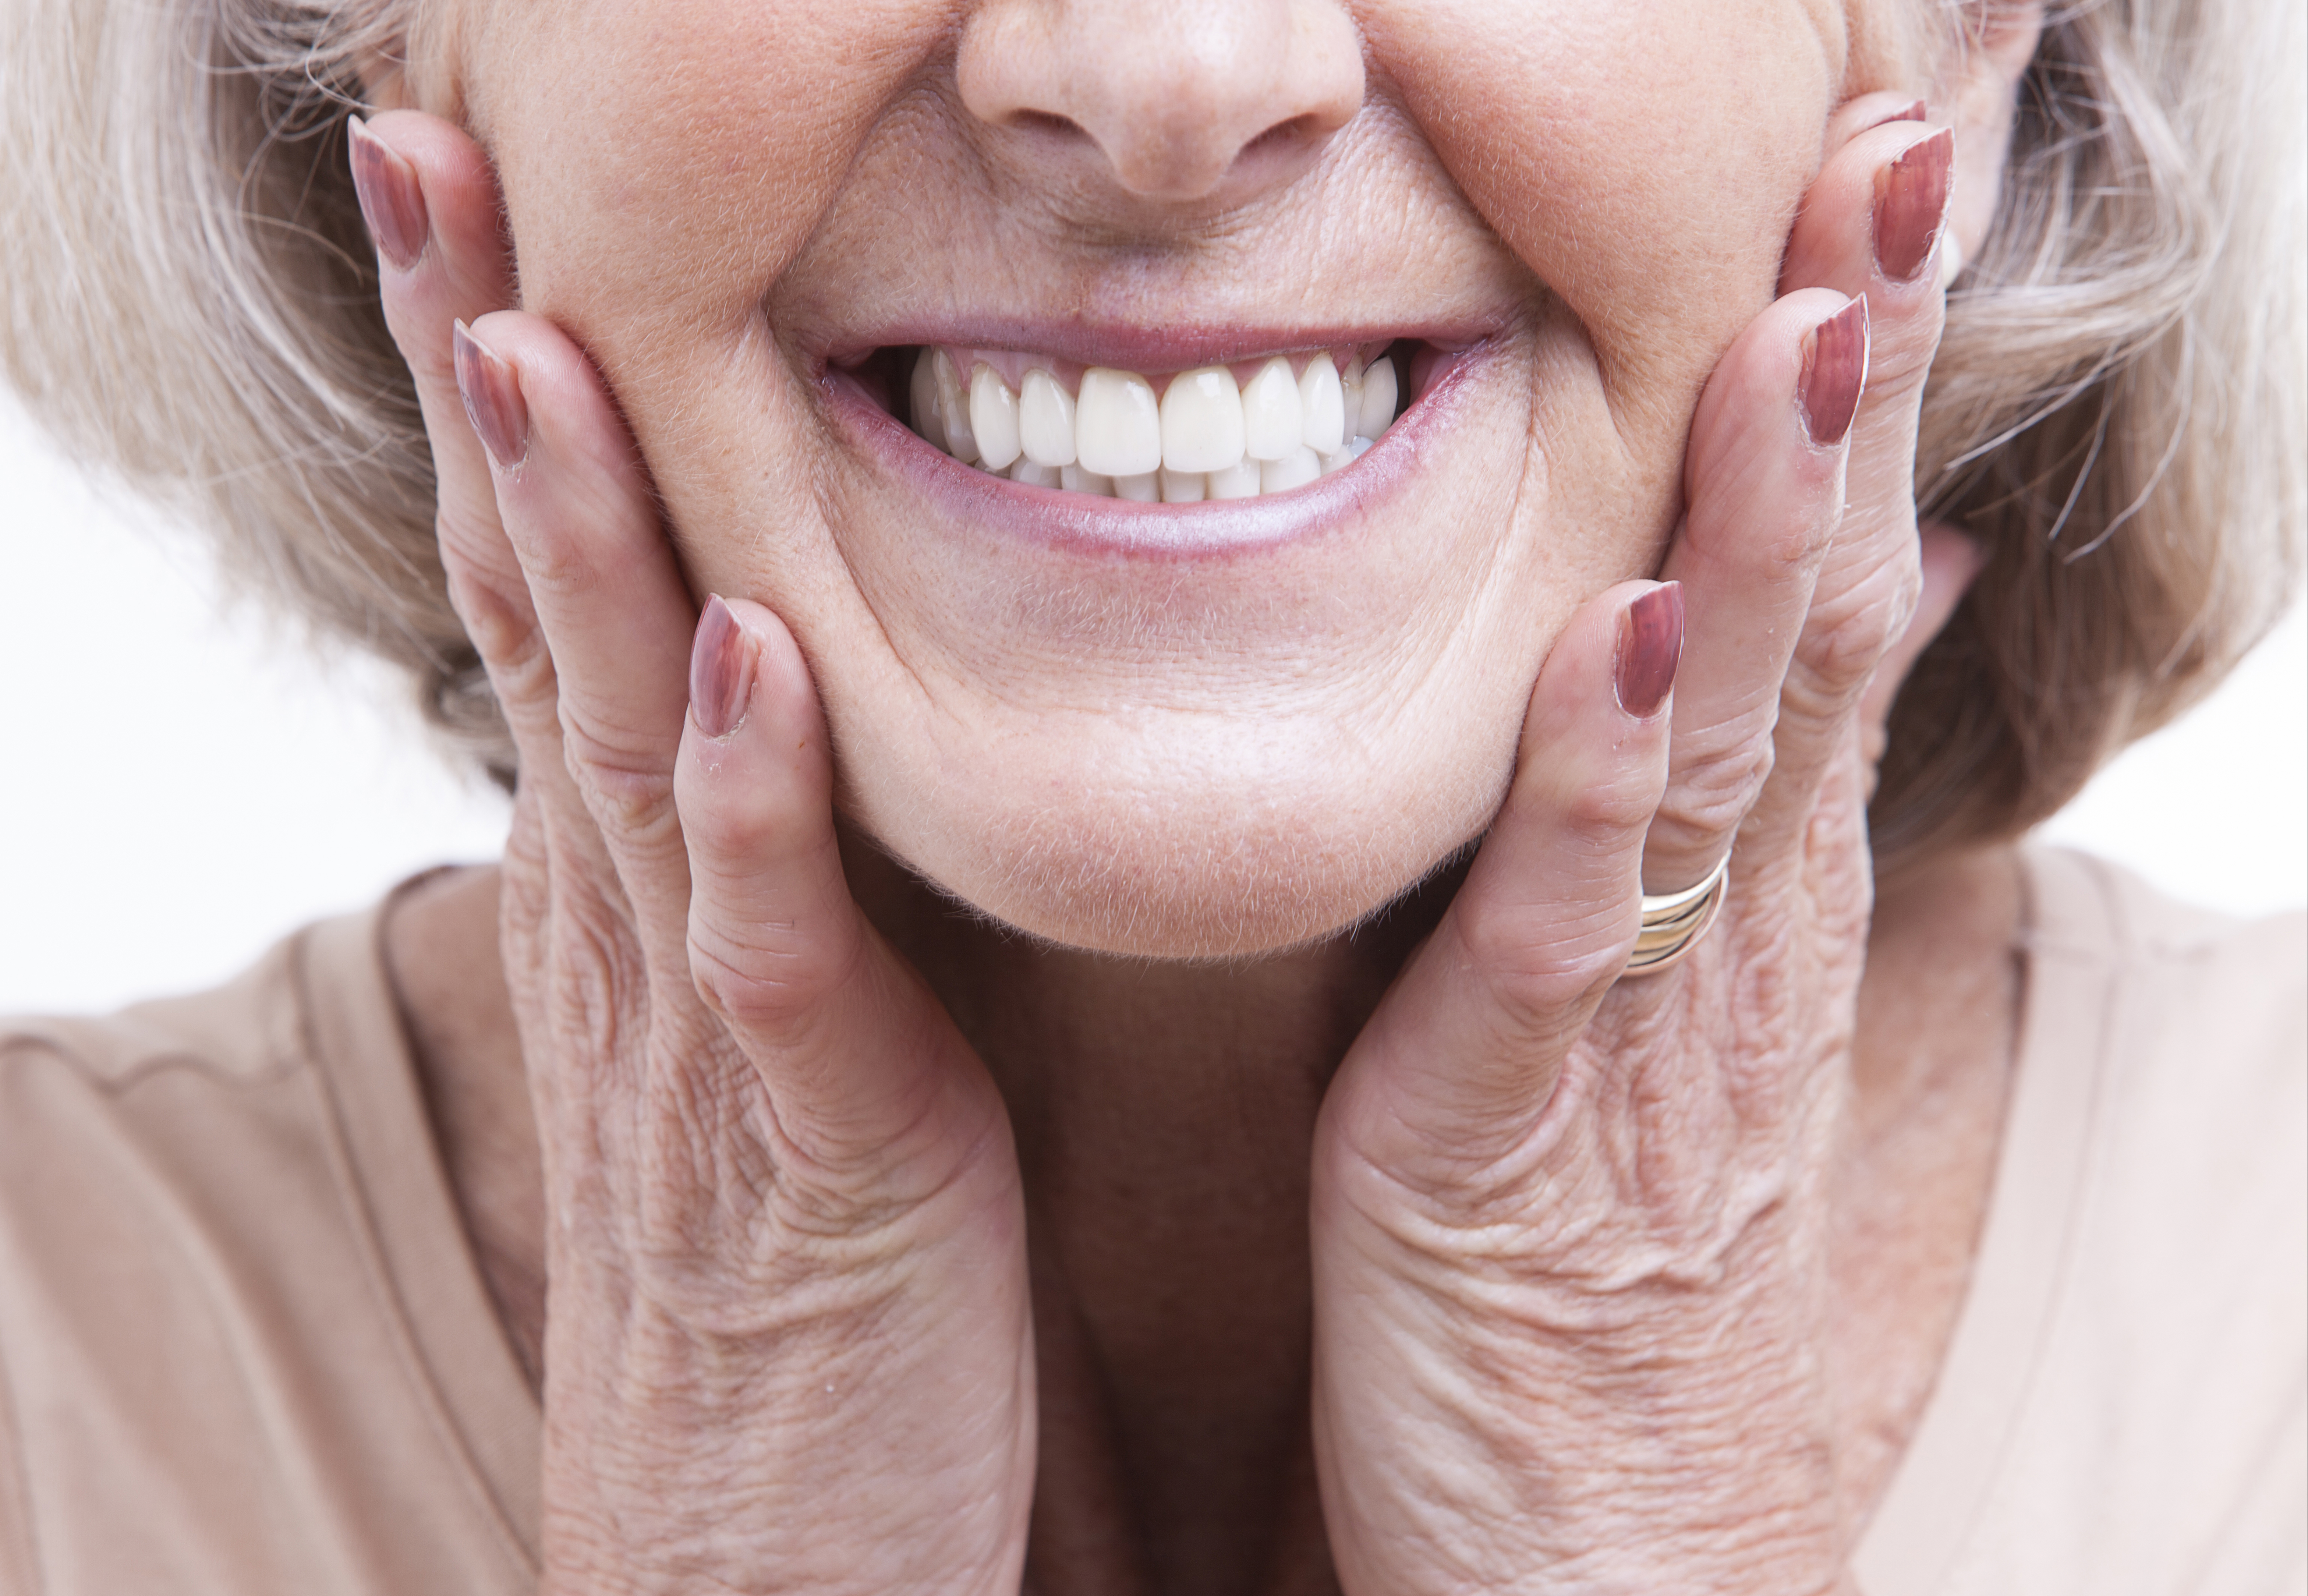 what are teeth whitening west palm beach?